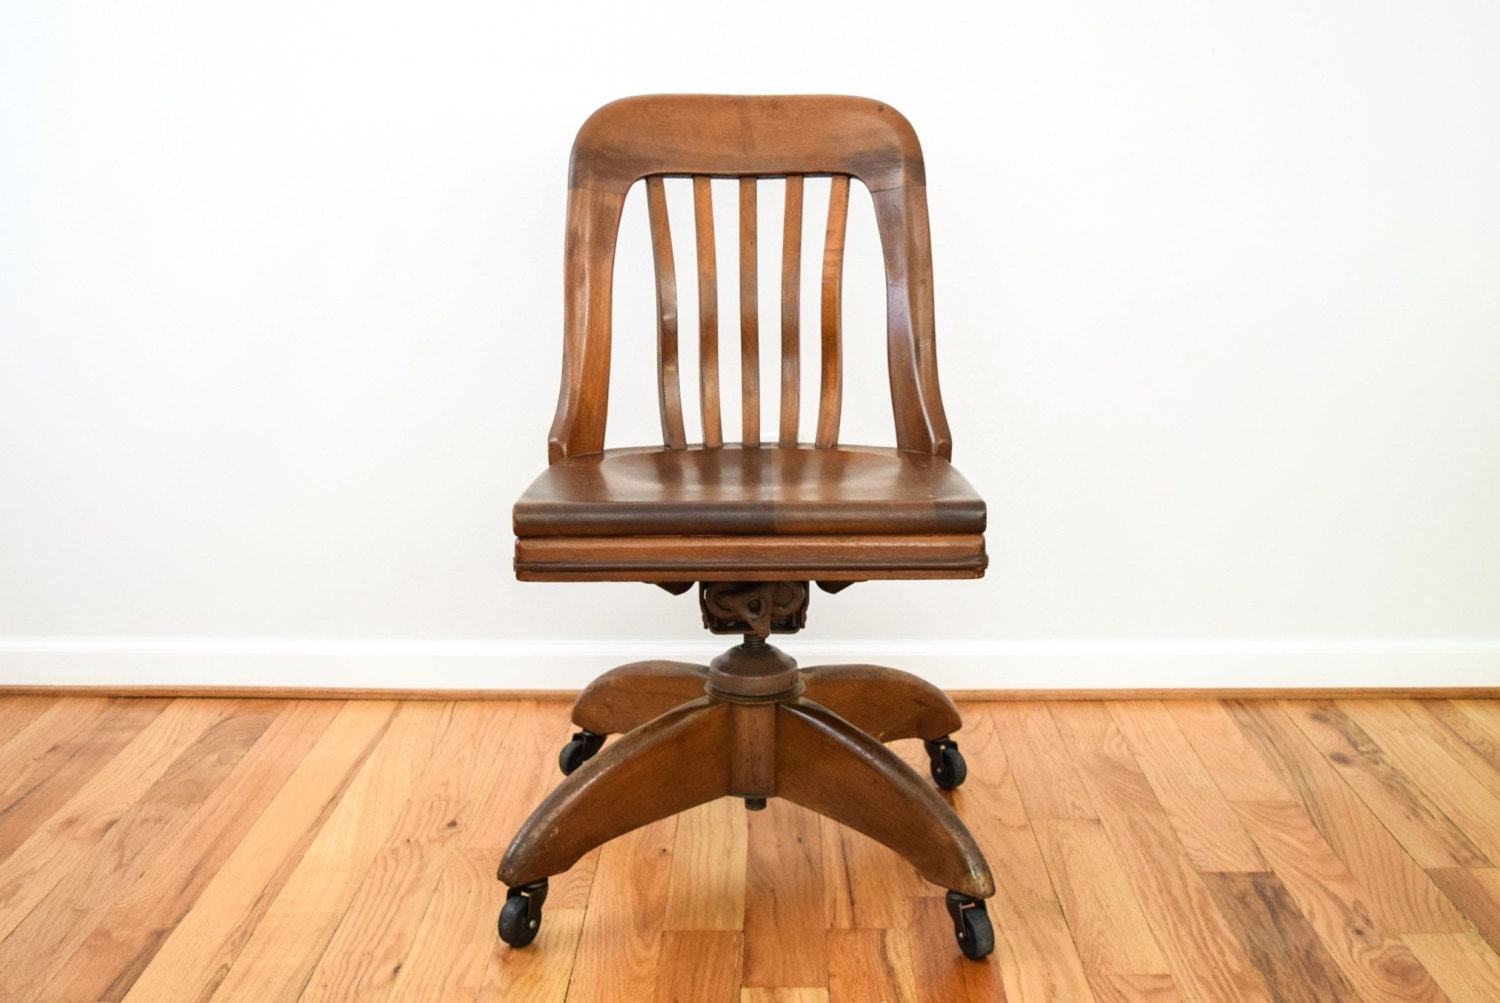 Antique Desk Chair Antique Office Chair Wood Office Chair